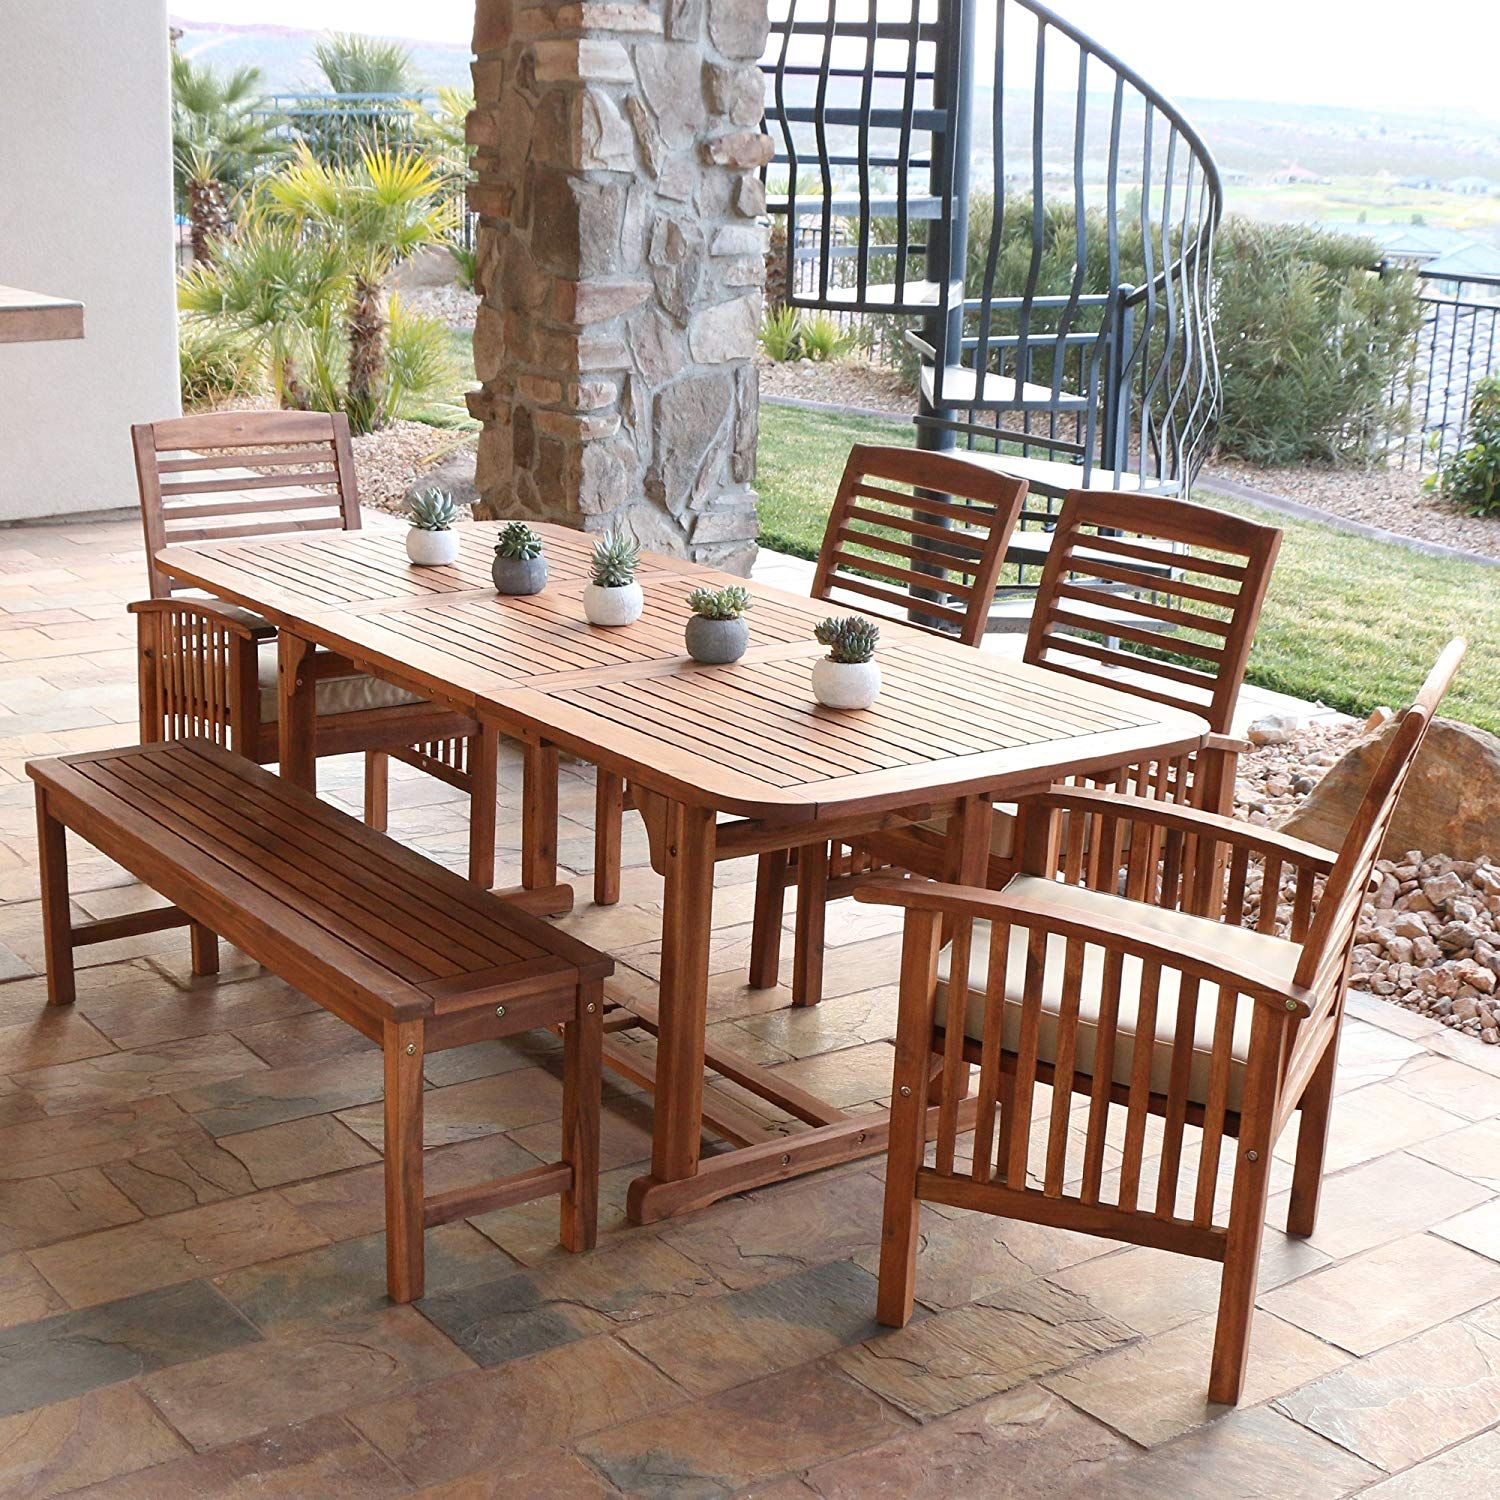 Outdoor table and chairs inspiration Outdoor table